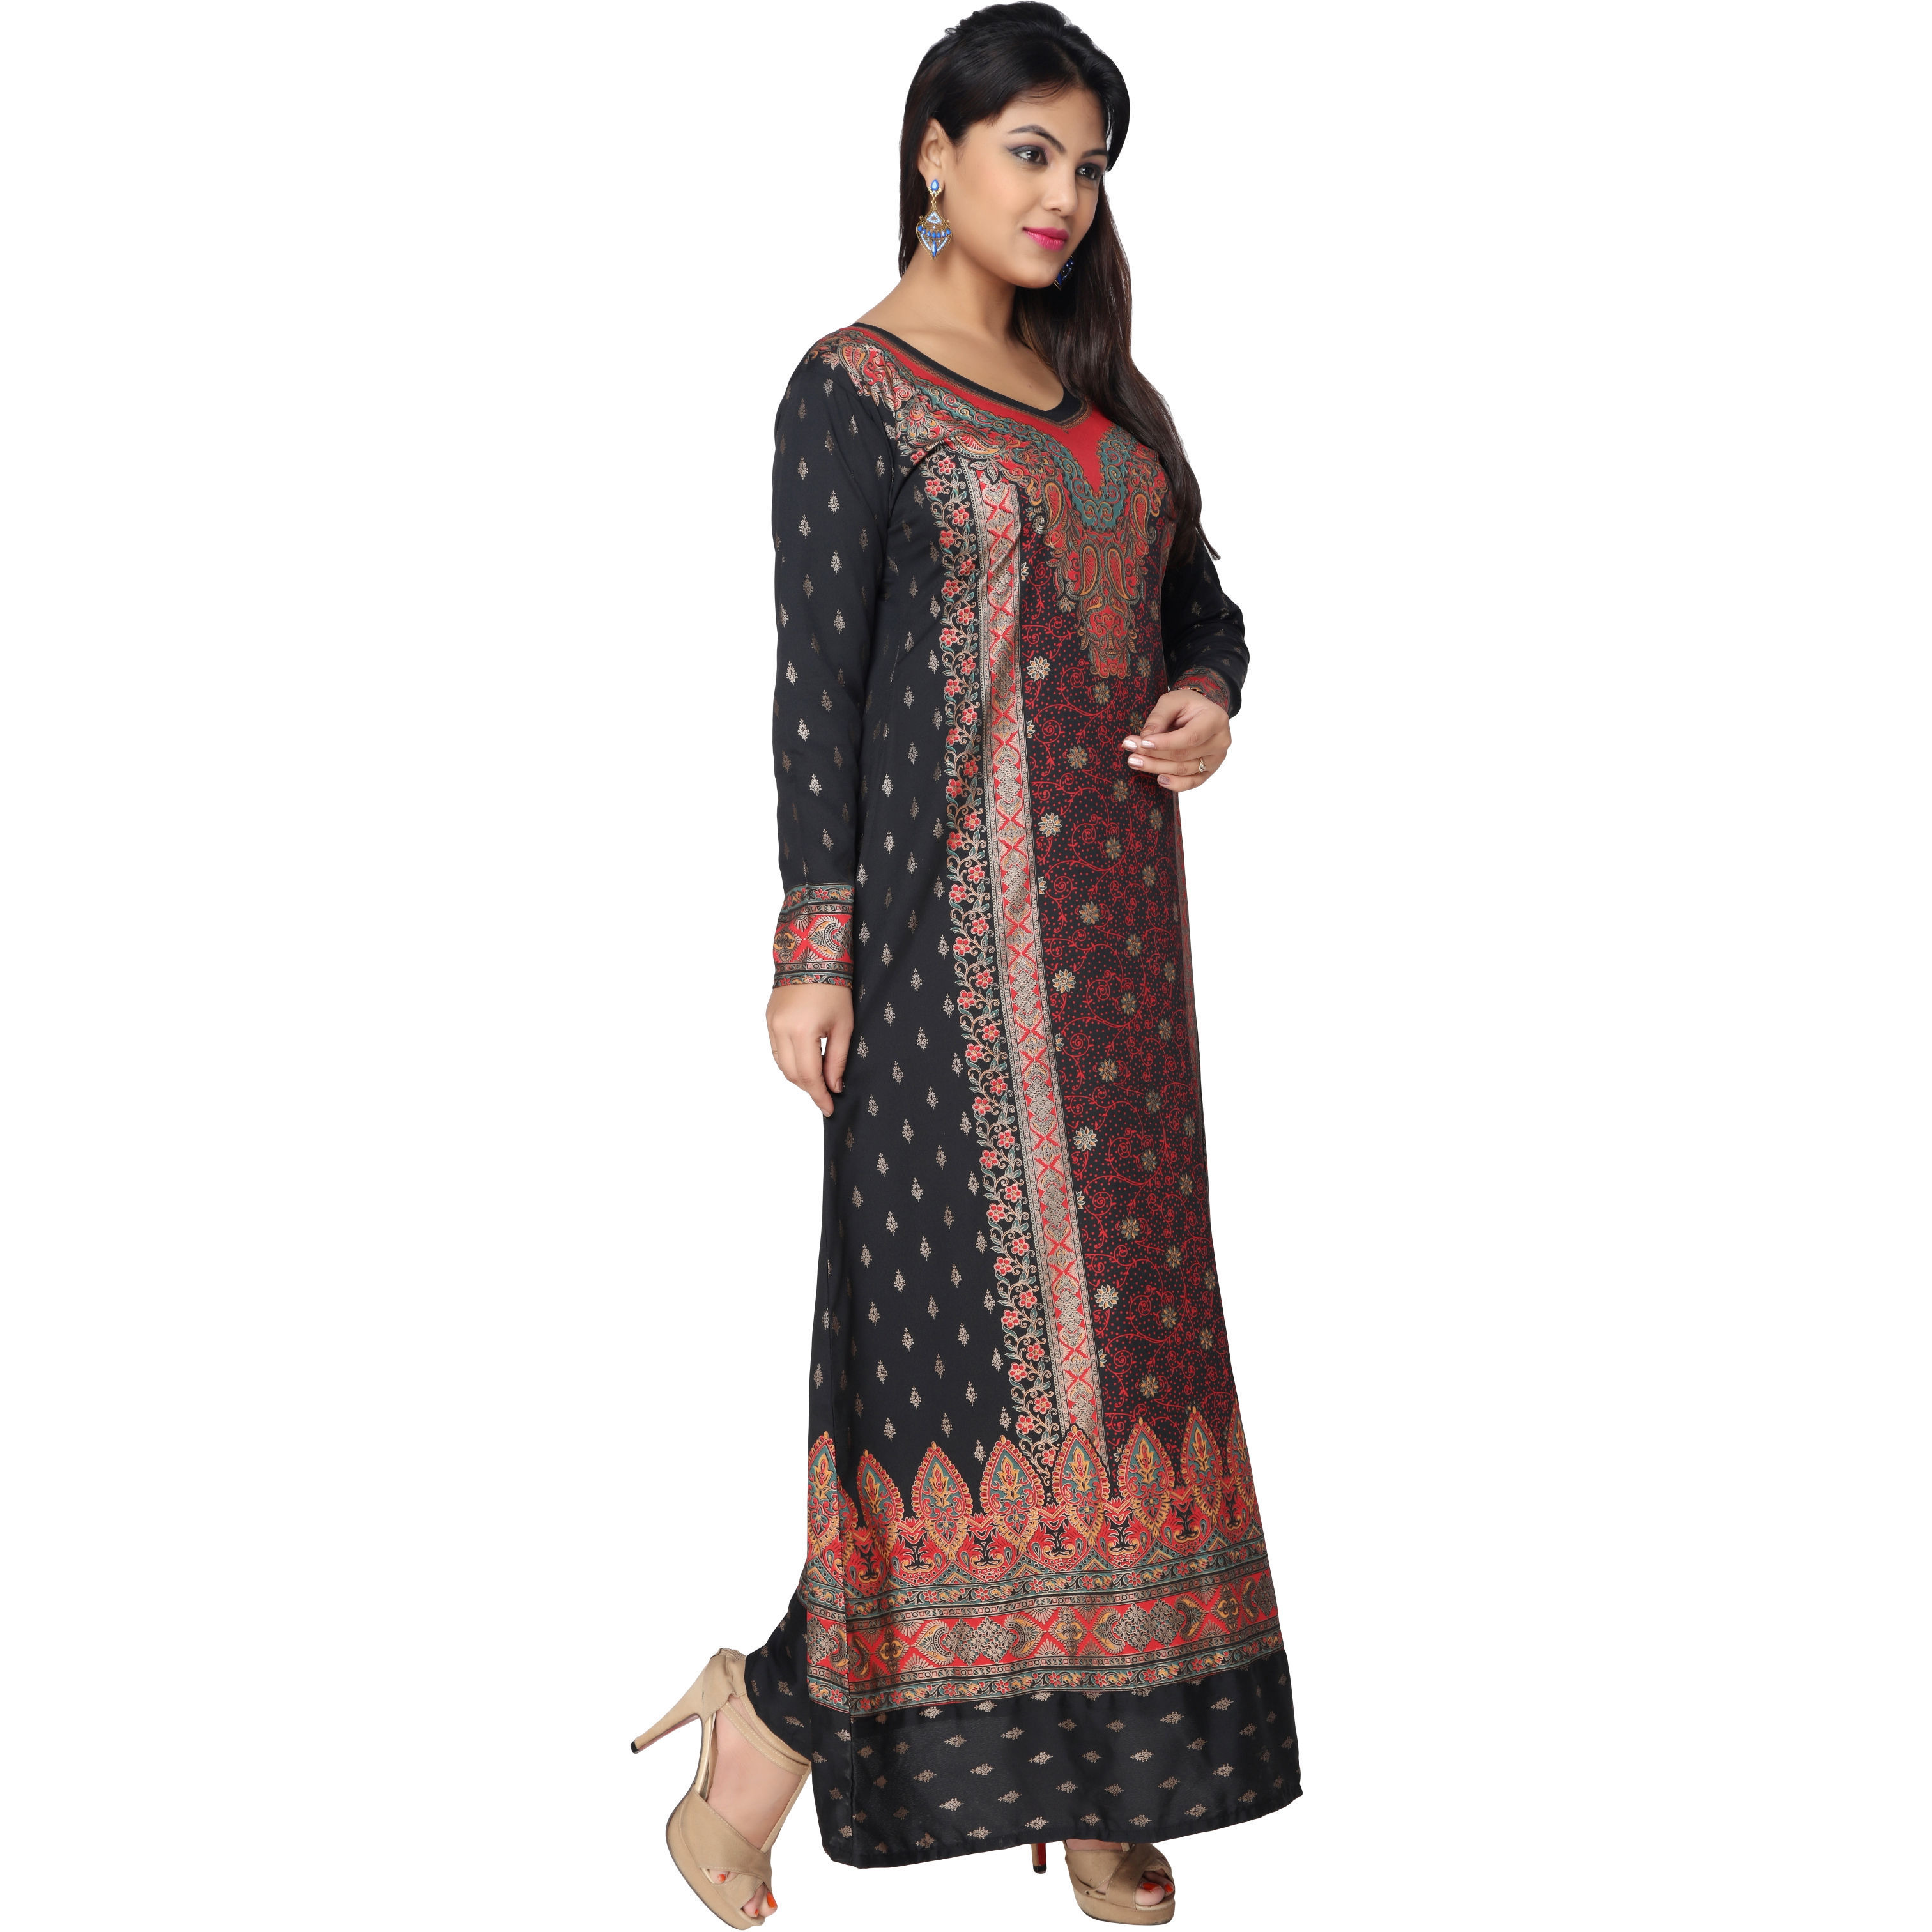 TrendyFashionMall Gold Print Kaftans Maxi Dresses with design in Front and Back (Color:TFMKFT01031-BLACK-RED, Size:48 - 3X-LARGE)